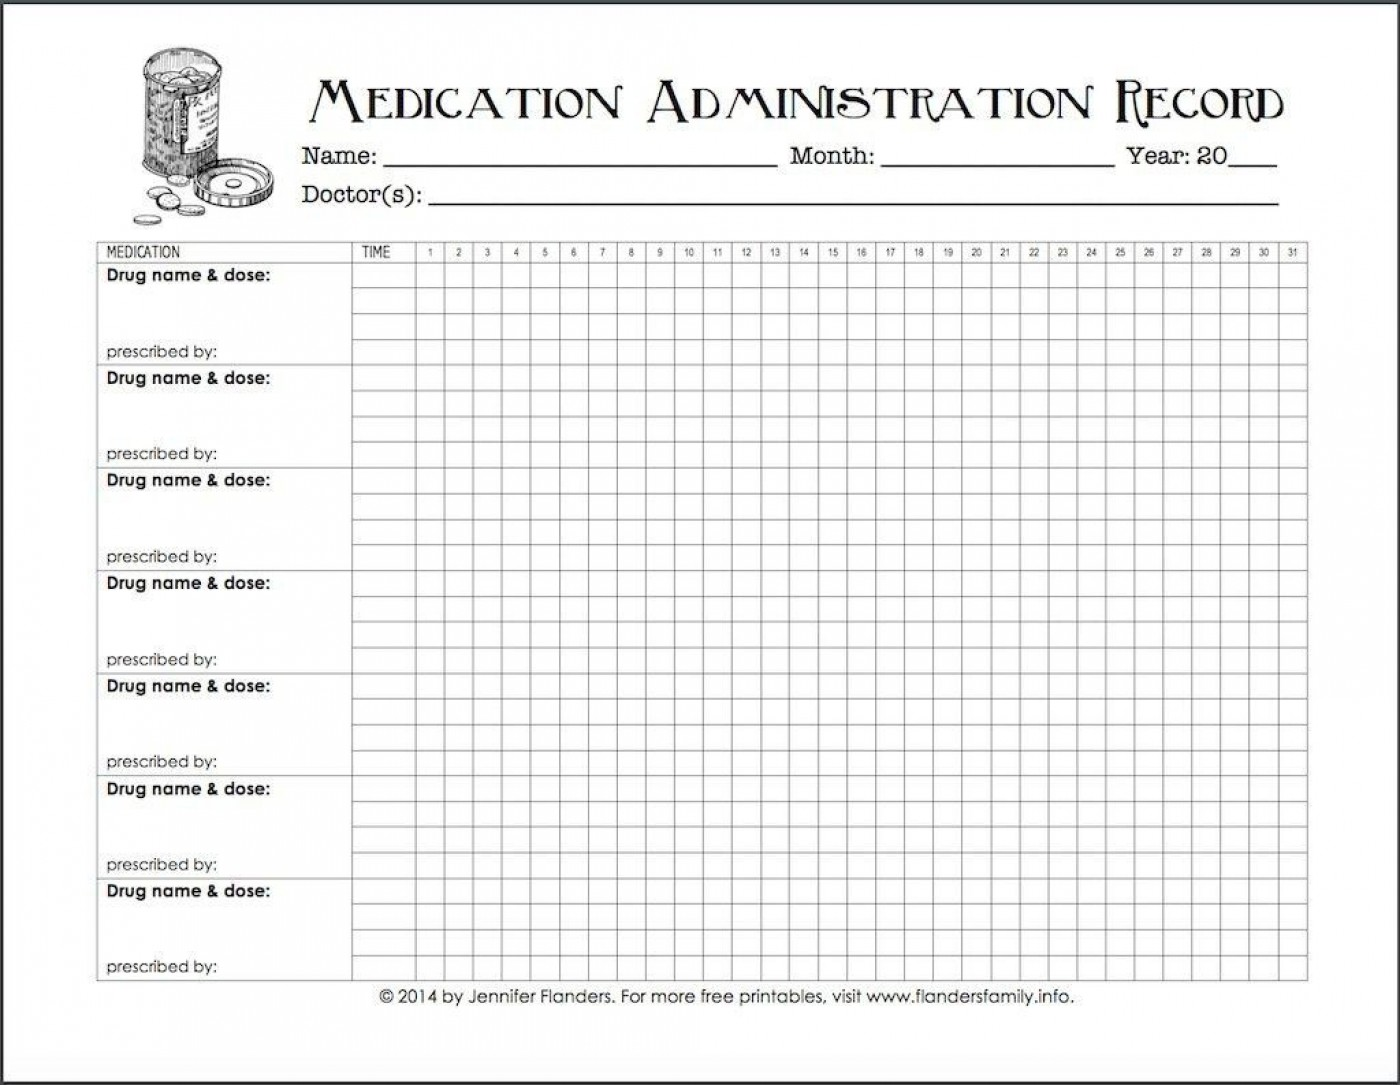 005 Excellent Medication Administration Record Form Download Highest Quality 1400